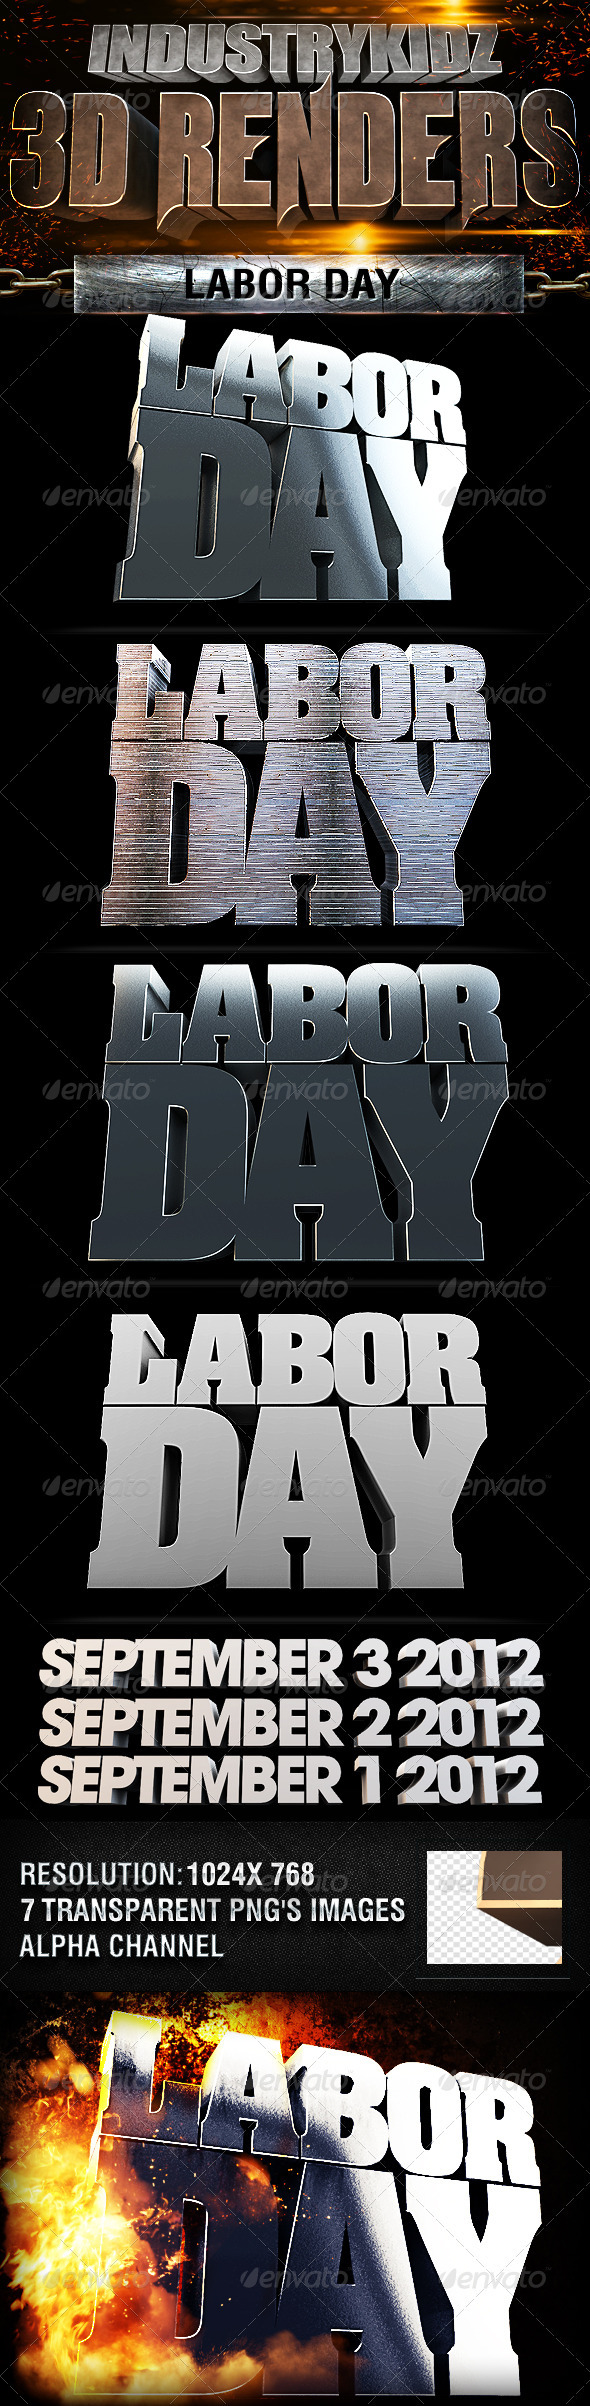 Labor Day 3d Renders - Text 3D Renders